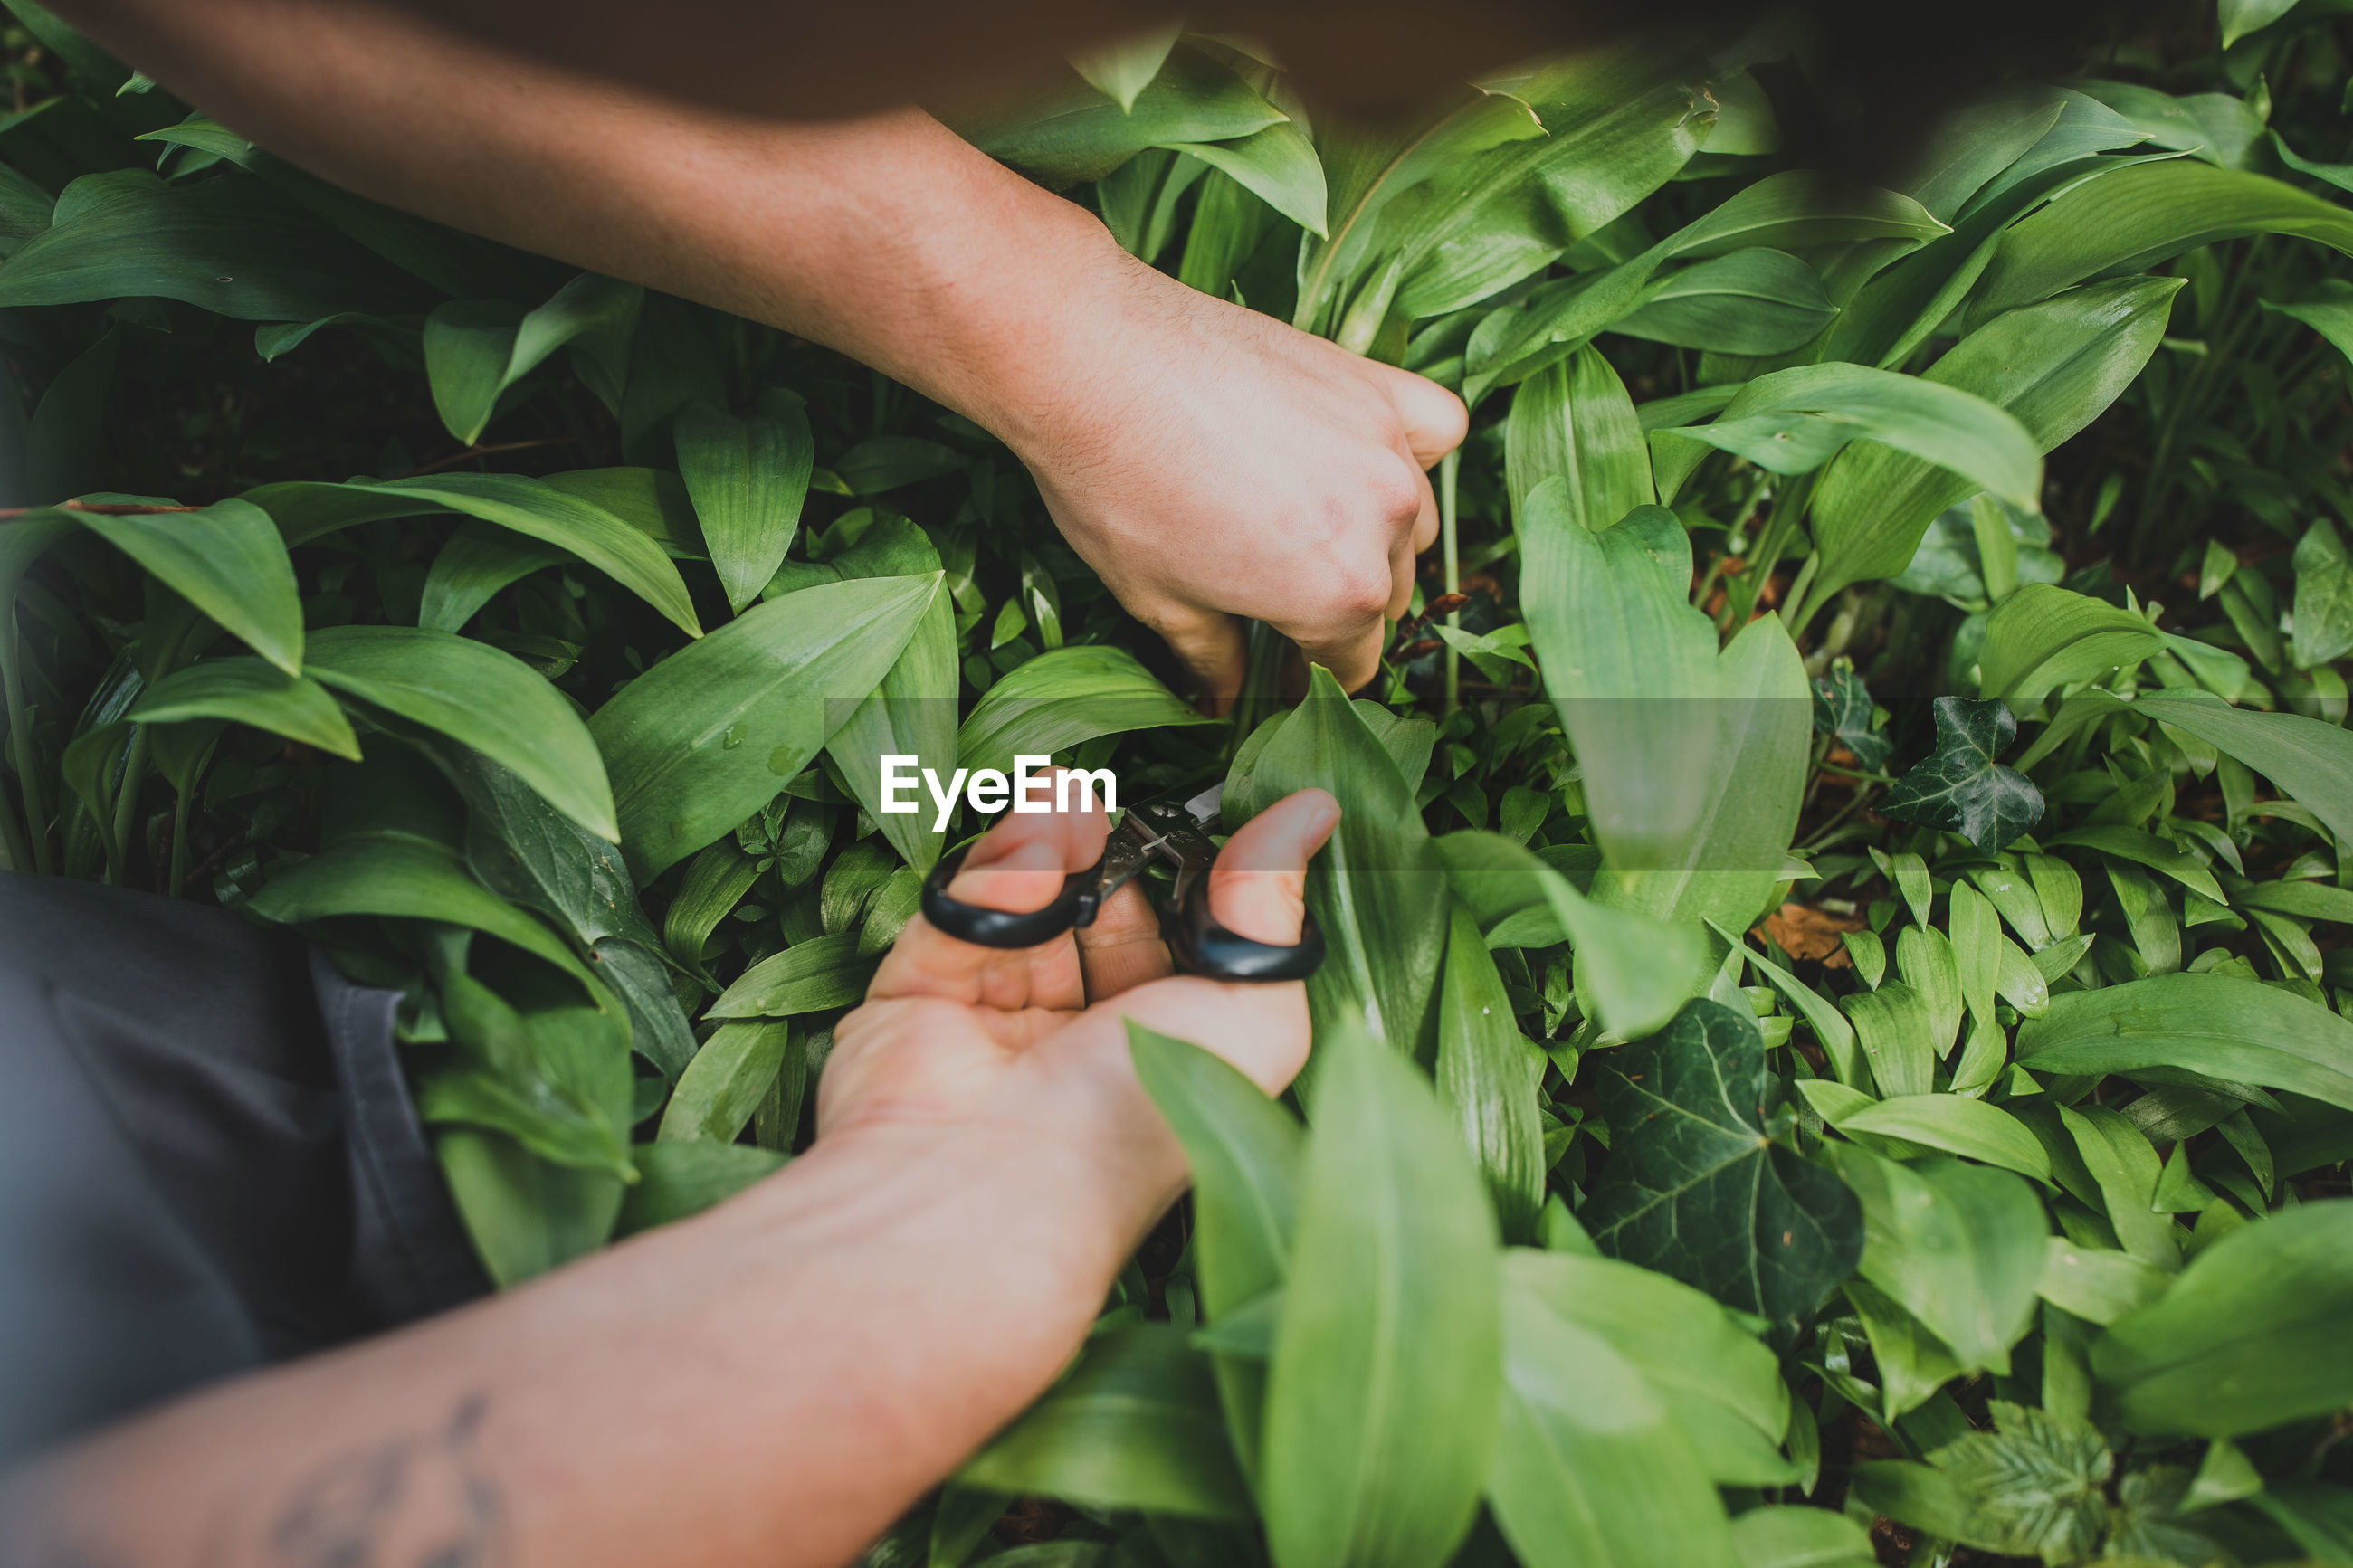 Cropped hands cutting plants with scissors